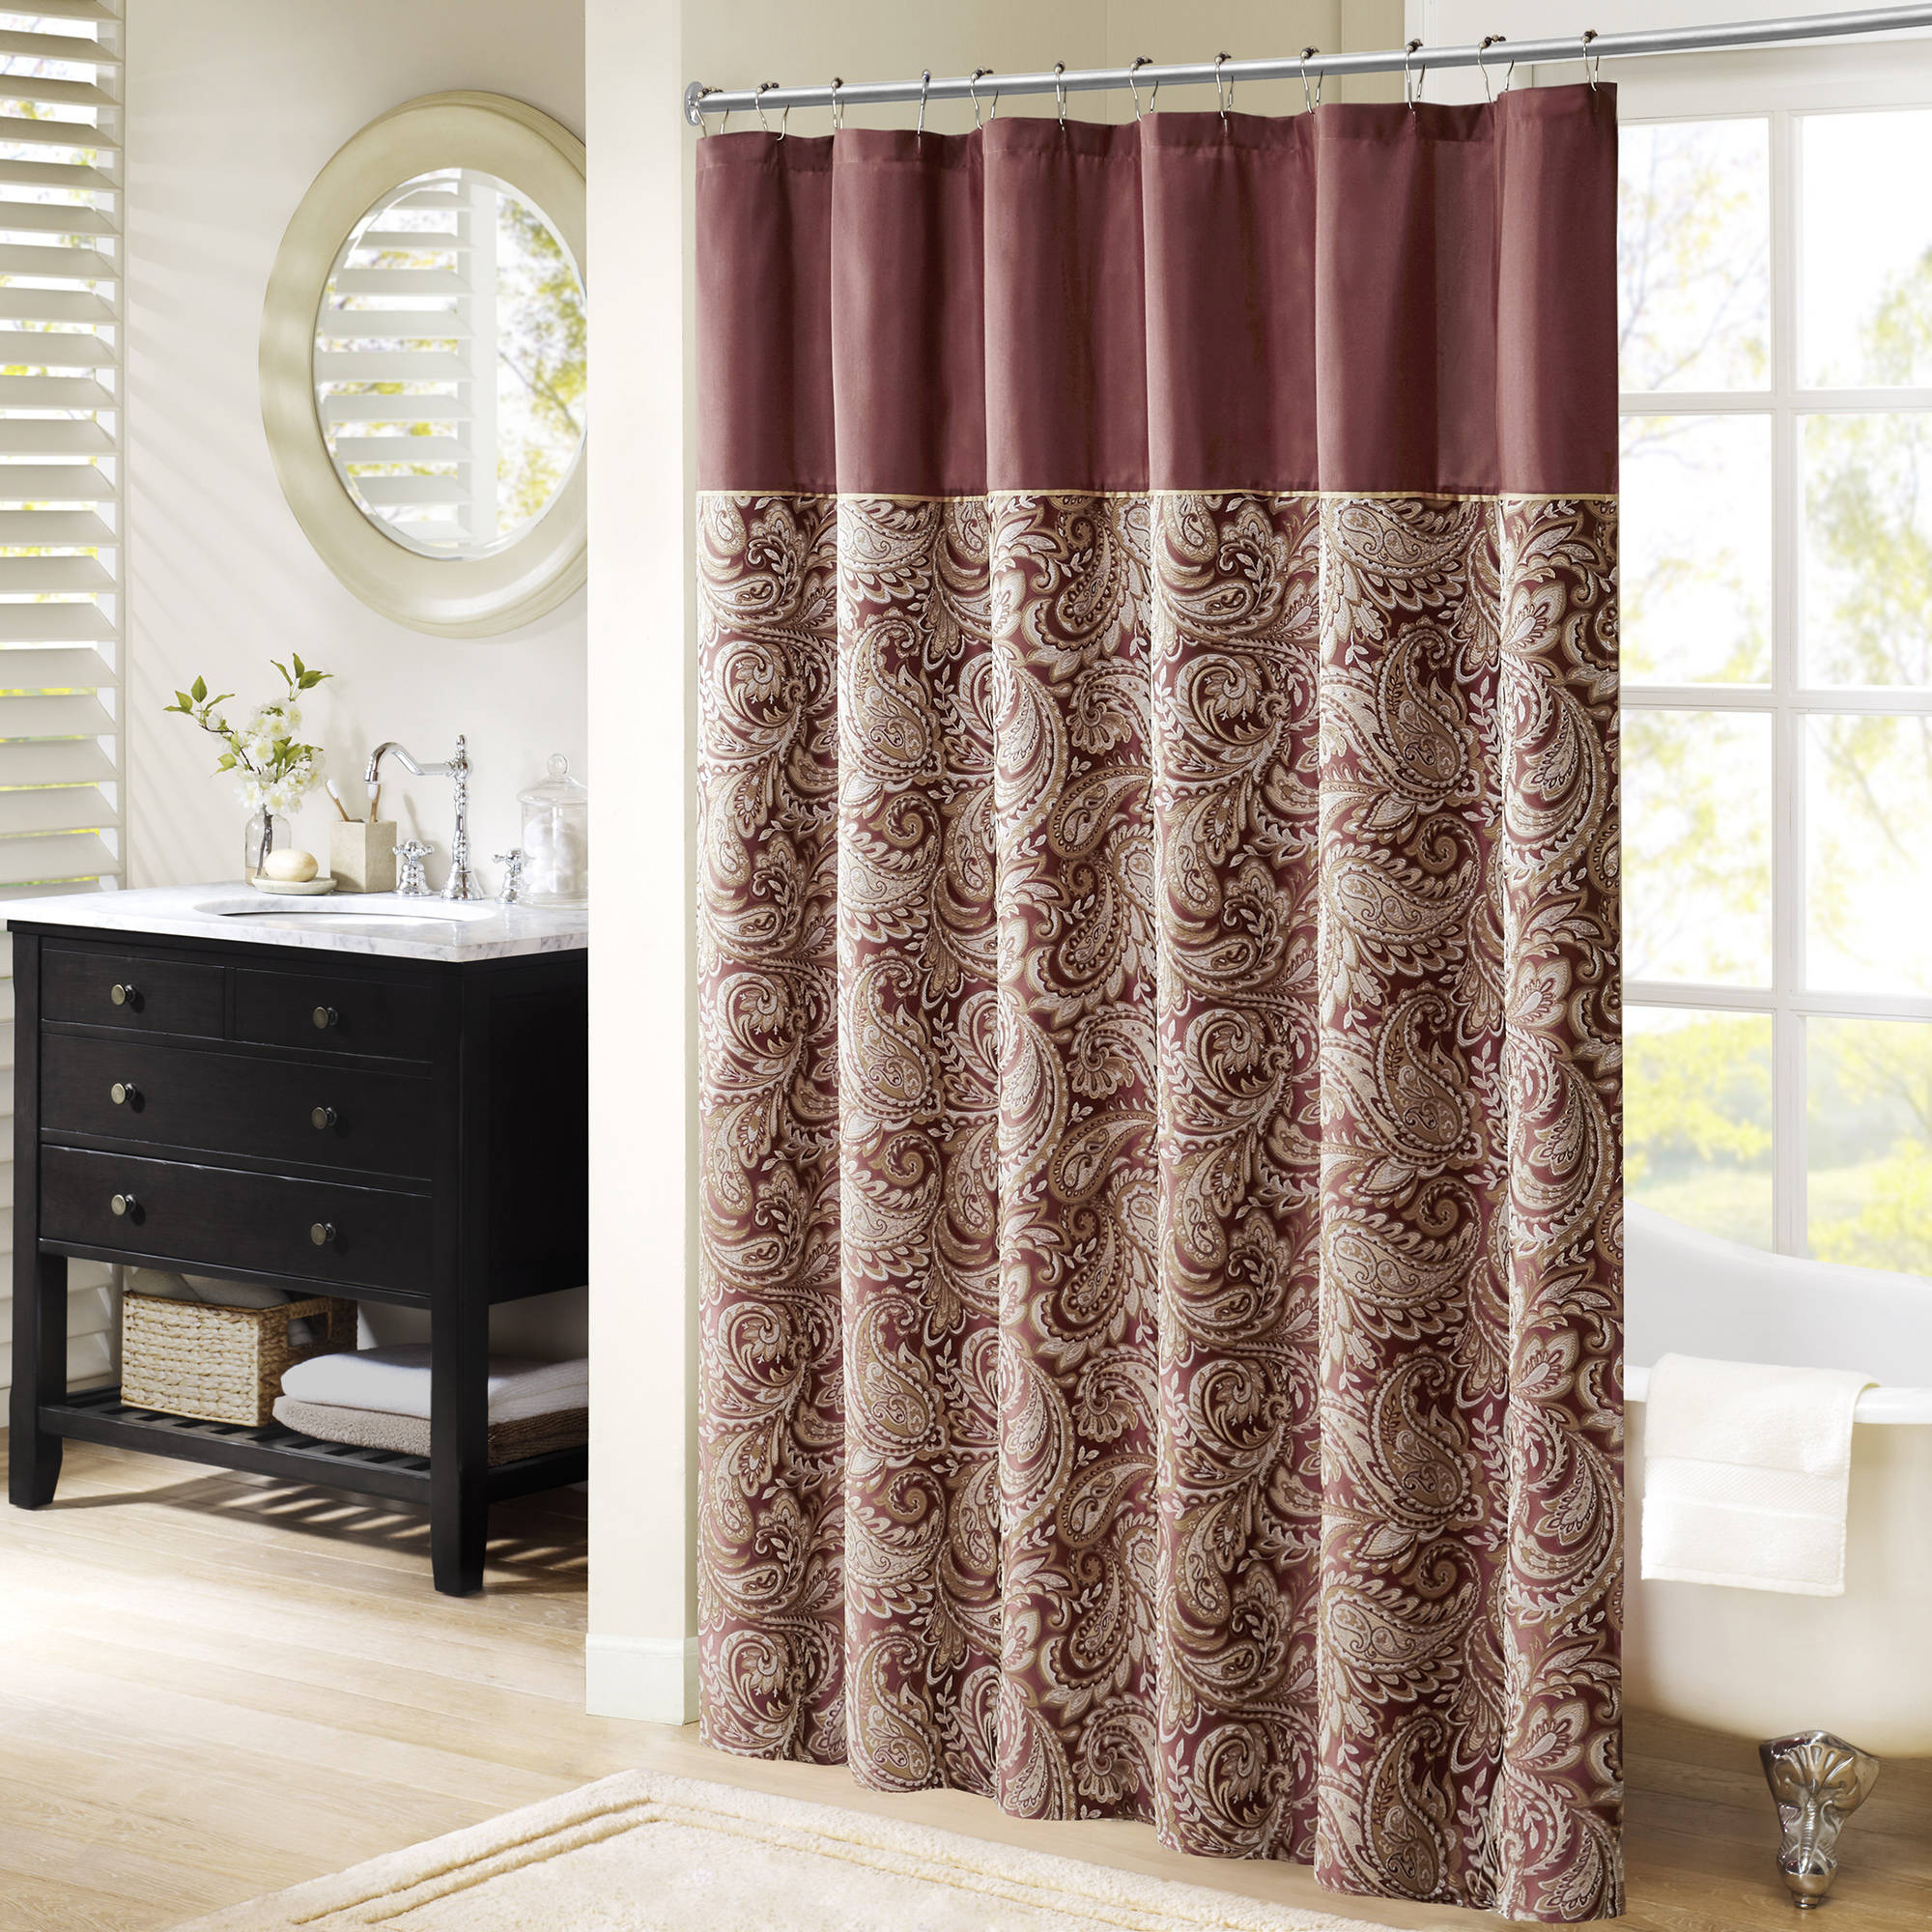 Purple shower curtain liner - 85 Above